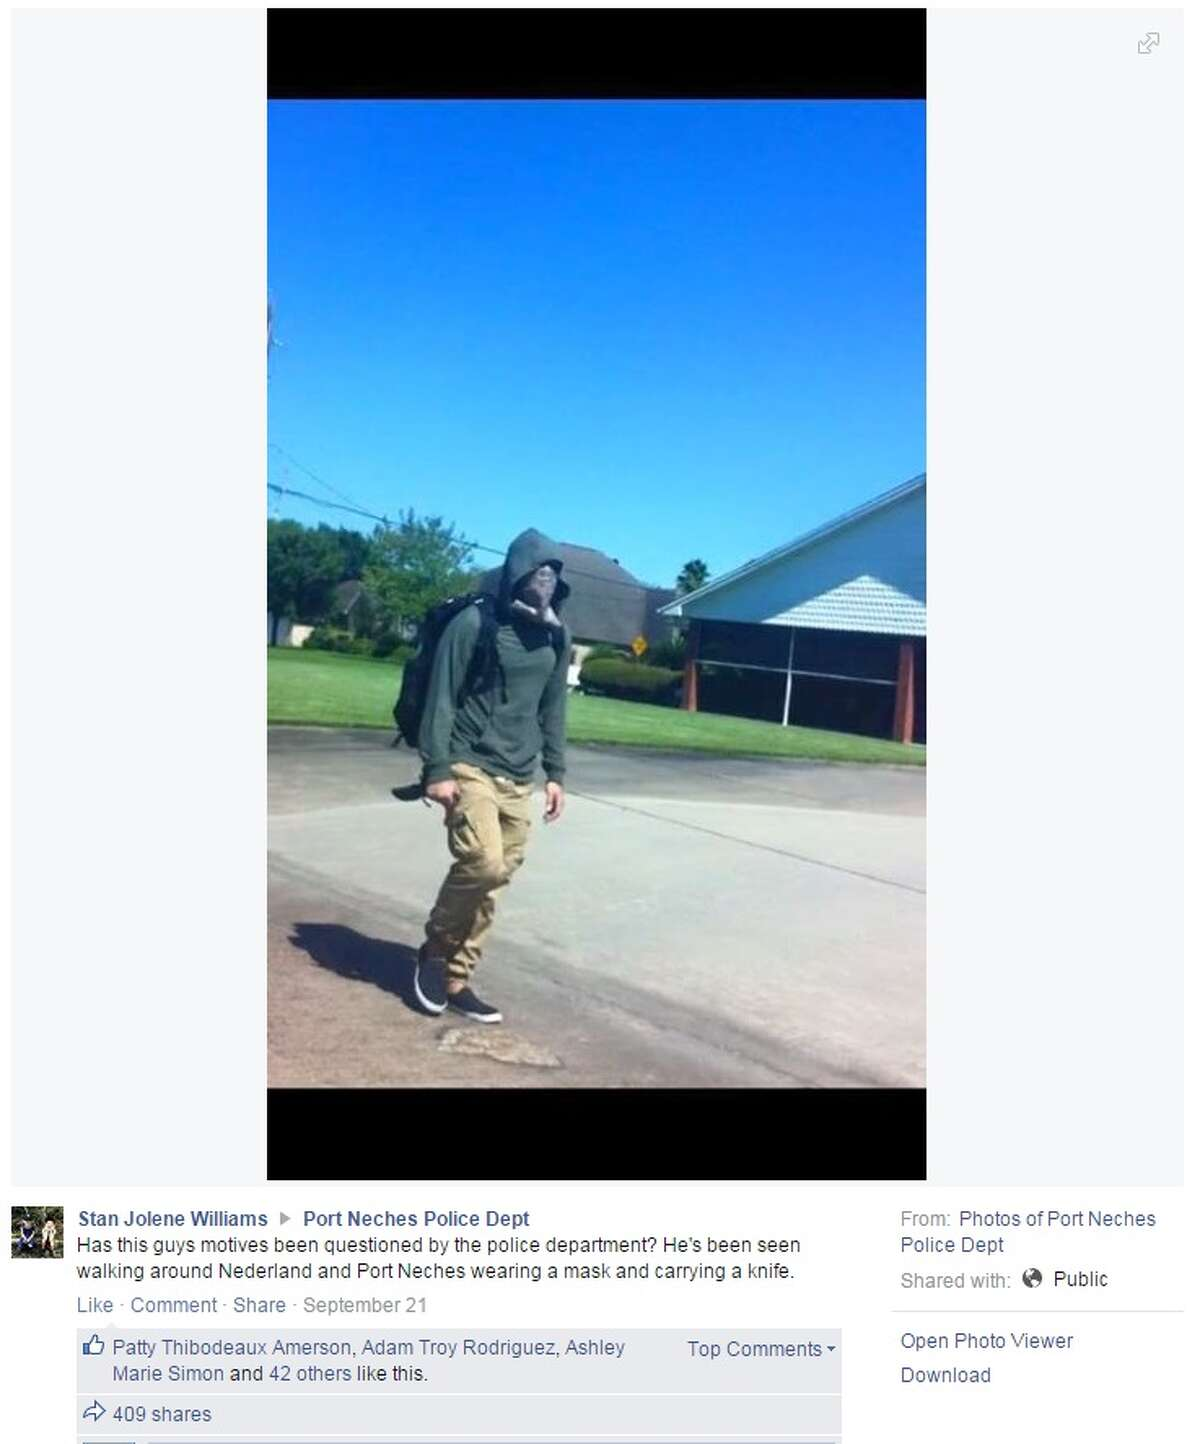 A man seen walking around Port Neches wearing a mask and a sweatshirt while carrying a knife has concerned some residents, who find his activity cause for concern. A photo posted to the Port Neches Police Department's Facebook page has been shared more than 400 times.